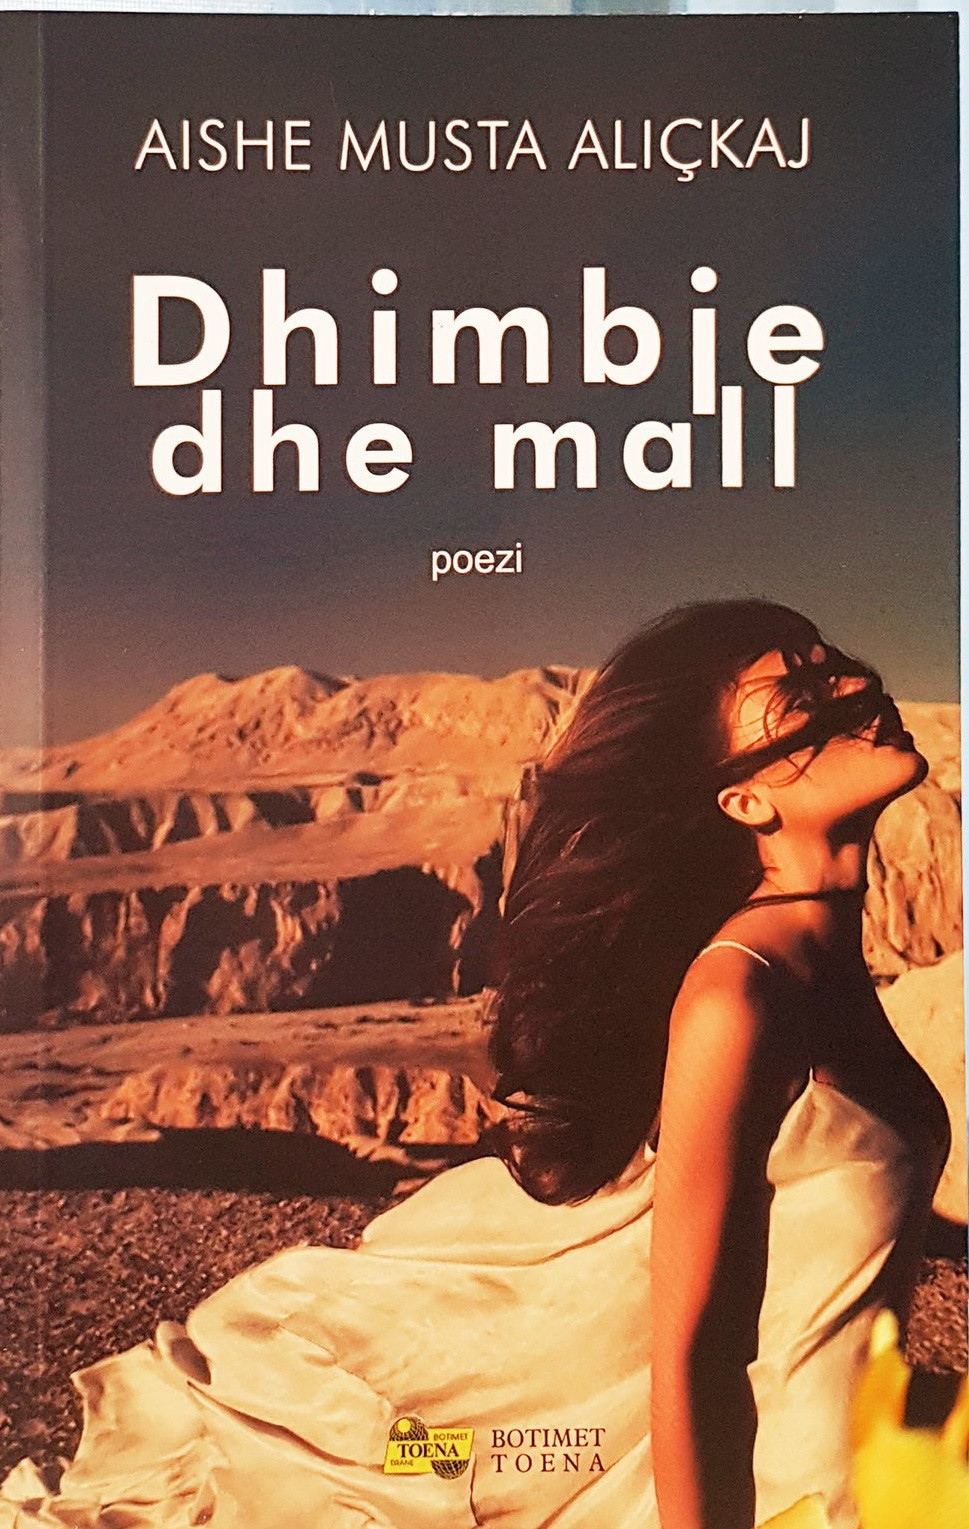 Dhimbje dhe mall